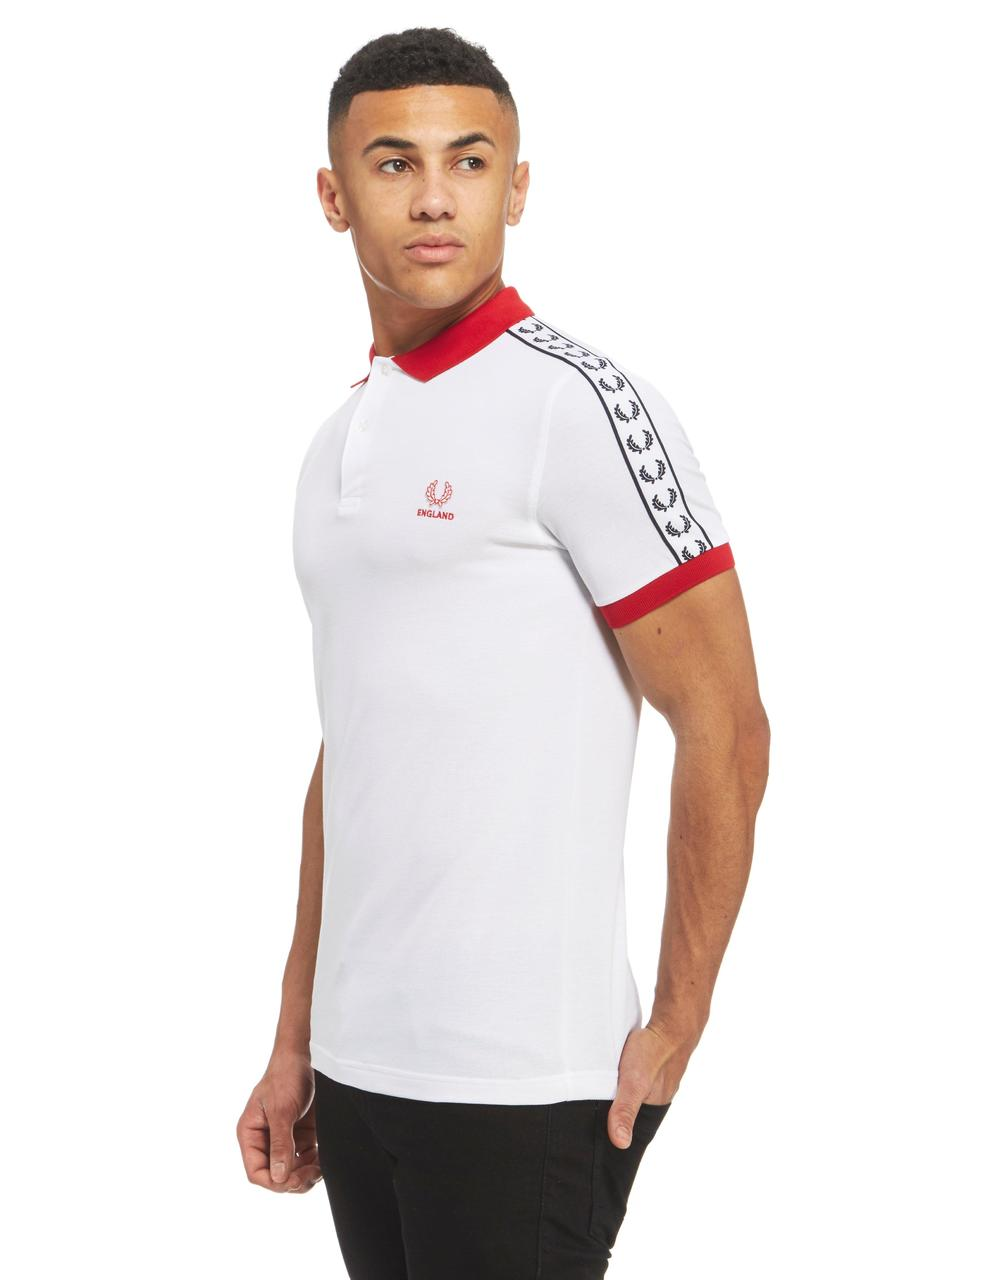 fred perry england tape polo shirt white england red. Black Bedroom Furniture Sets. Home Design Ideas